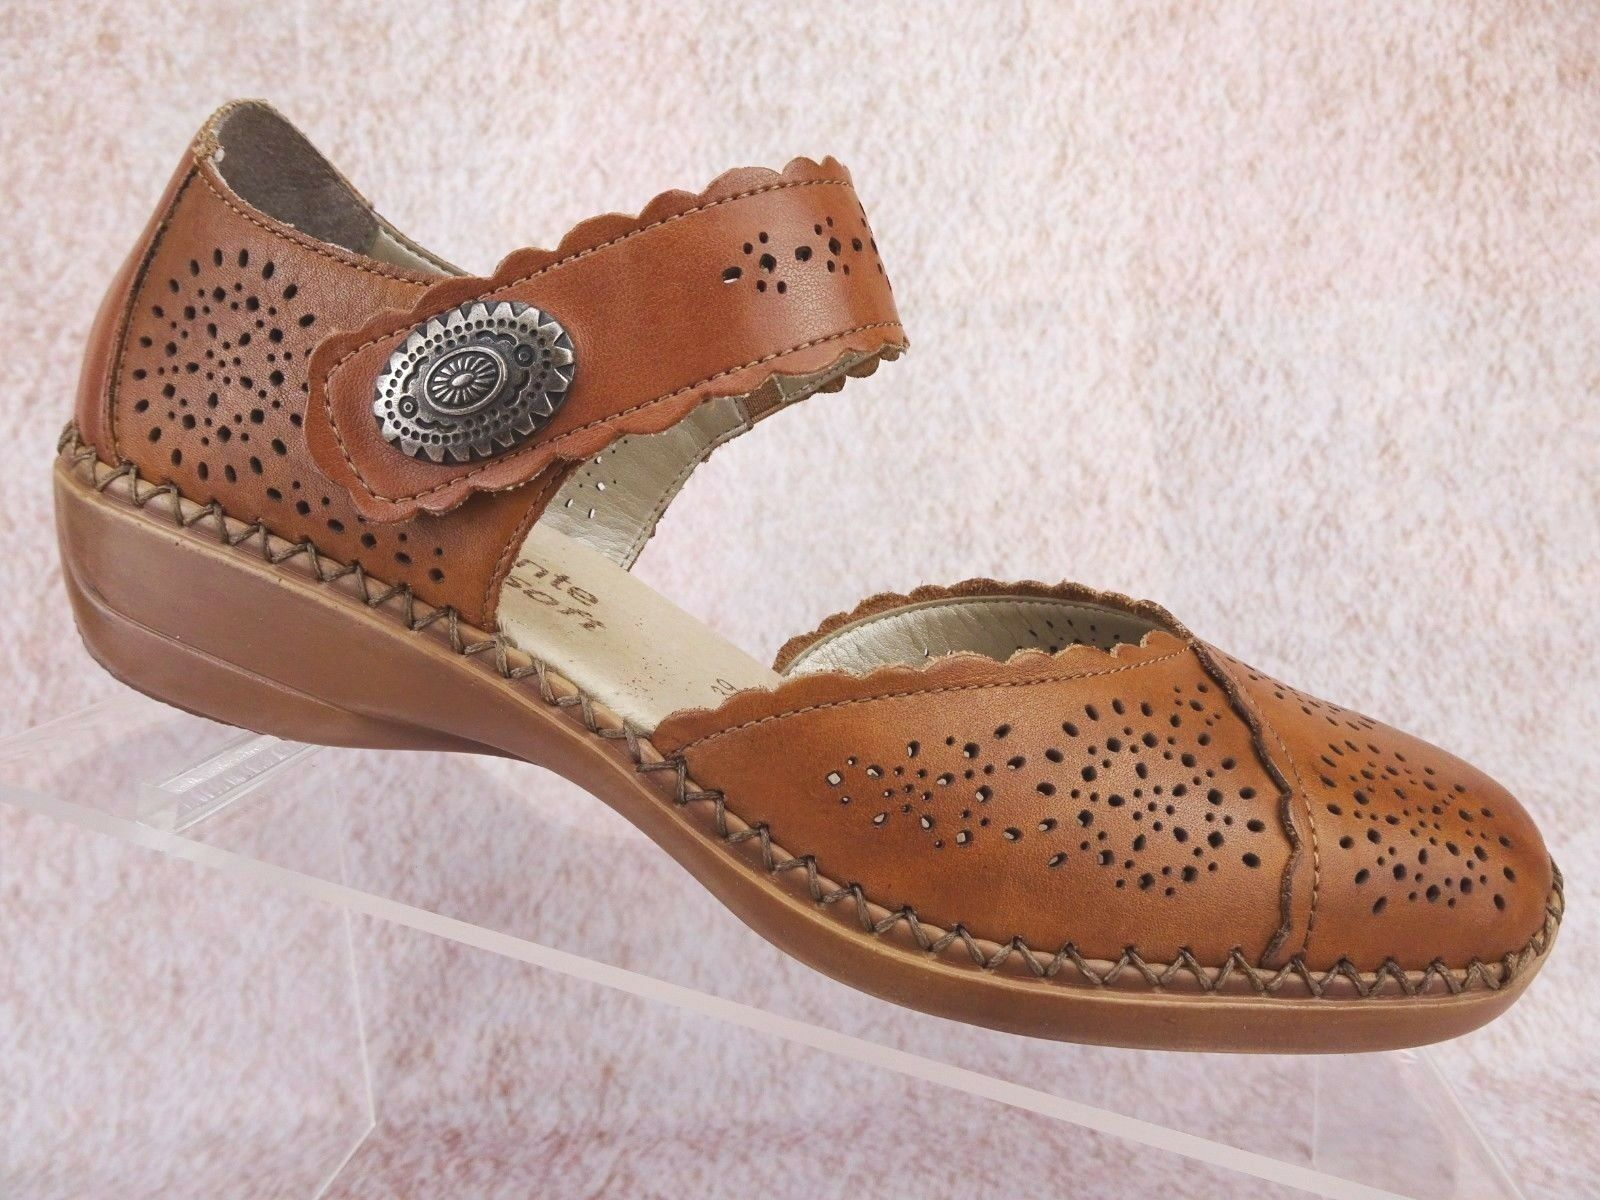 Remonte Womens Leather Ankle Strap Mary Jane Comfort Sandal shoes US 8 8.5